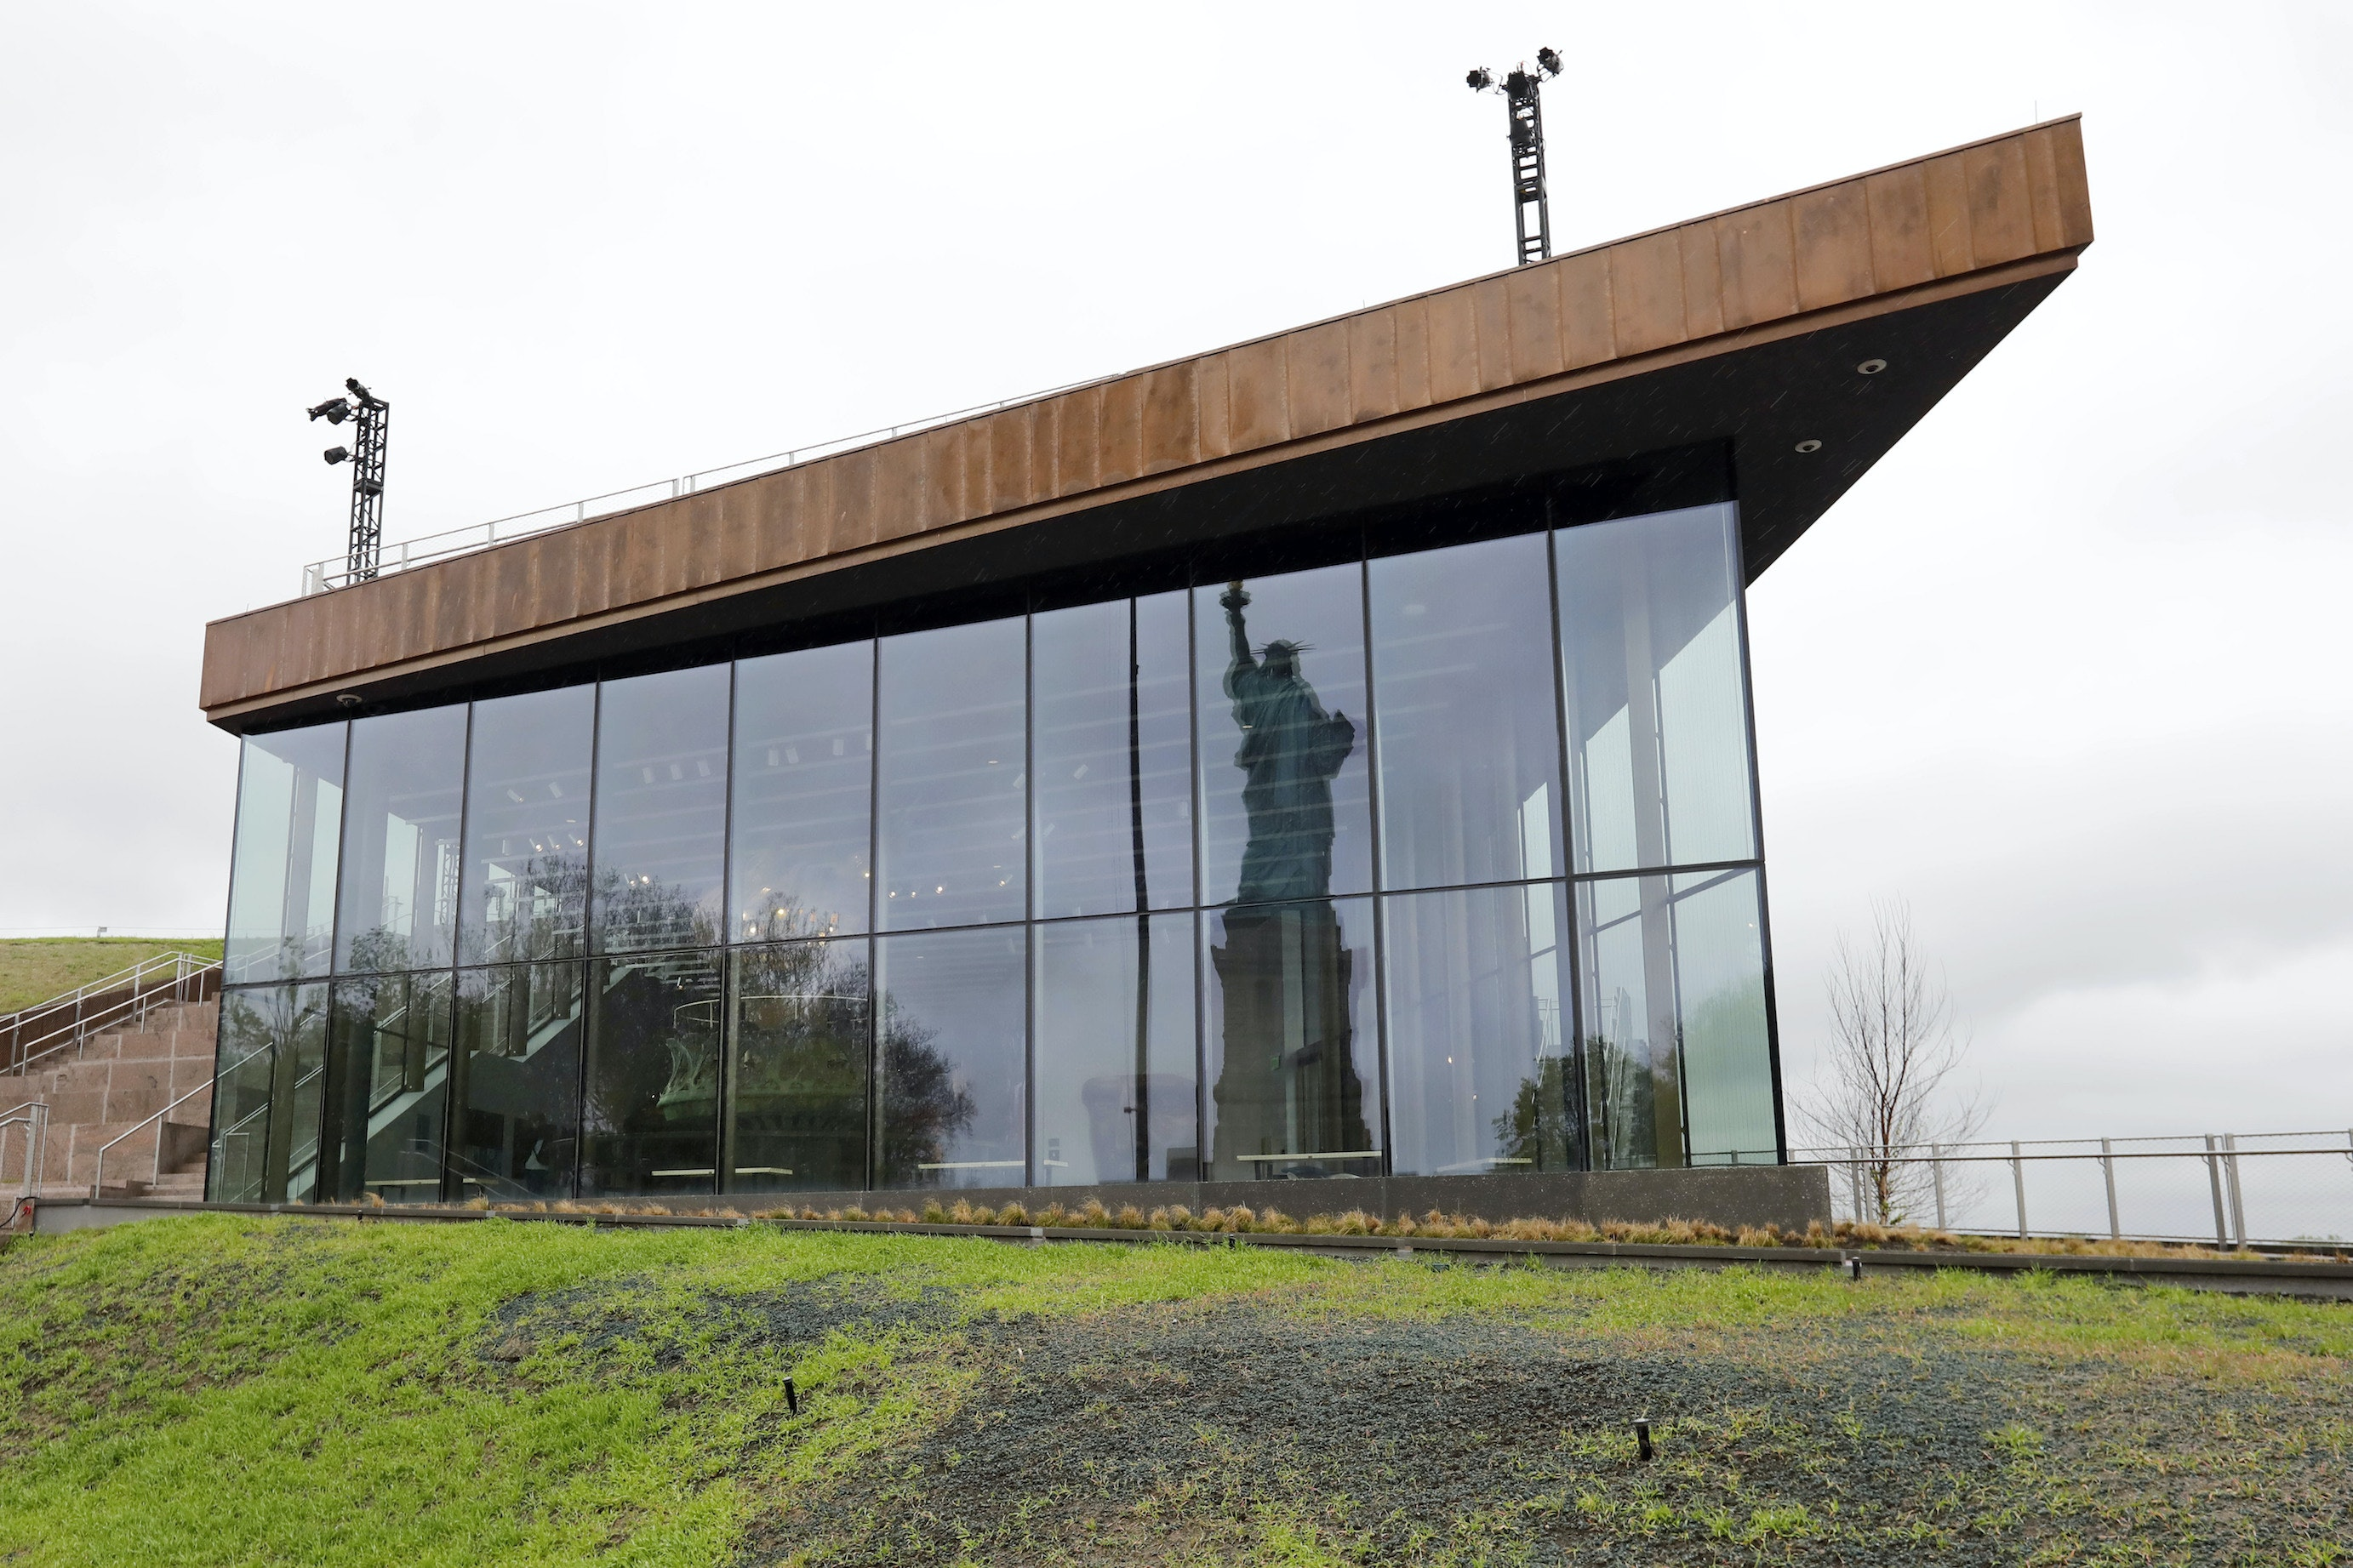 The museum had previously been housed in a smaller space inside the statue's pedestal.